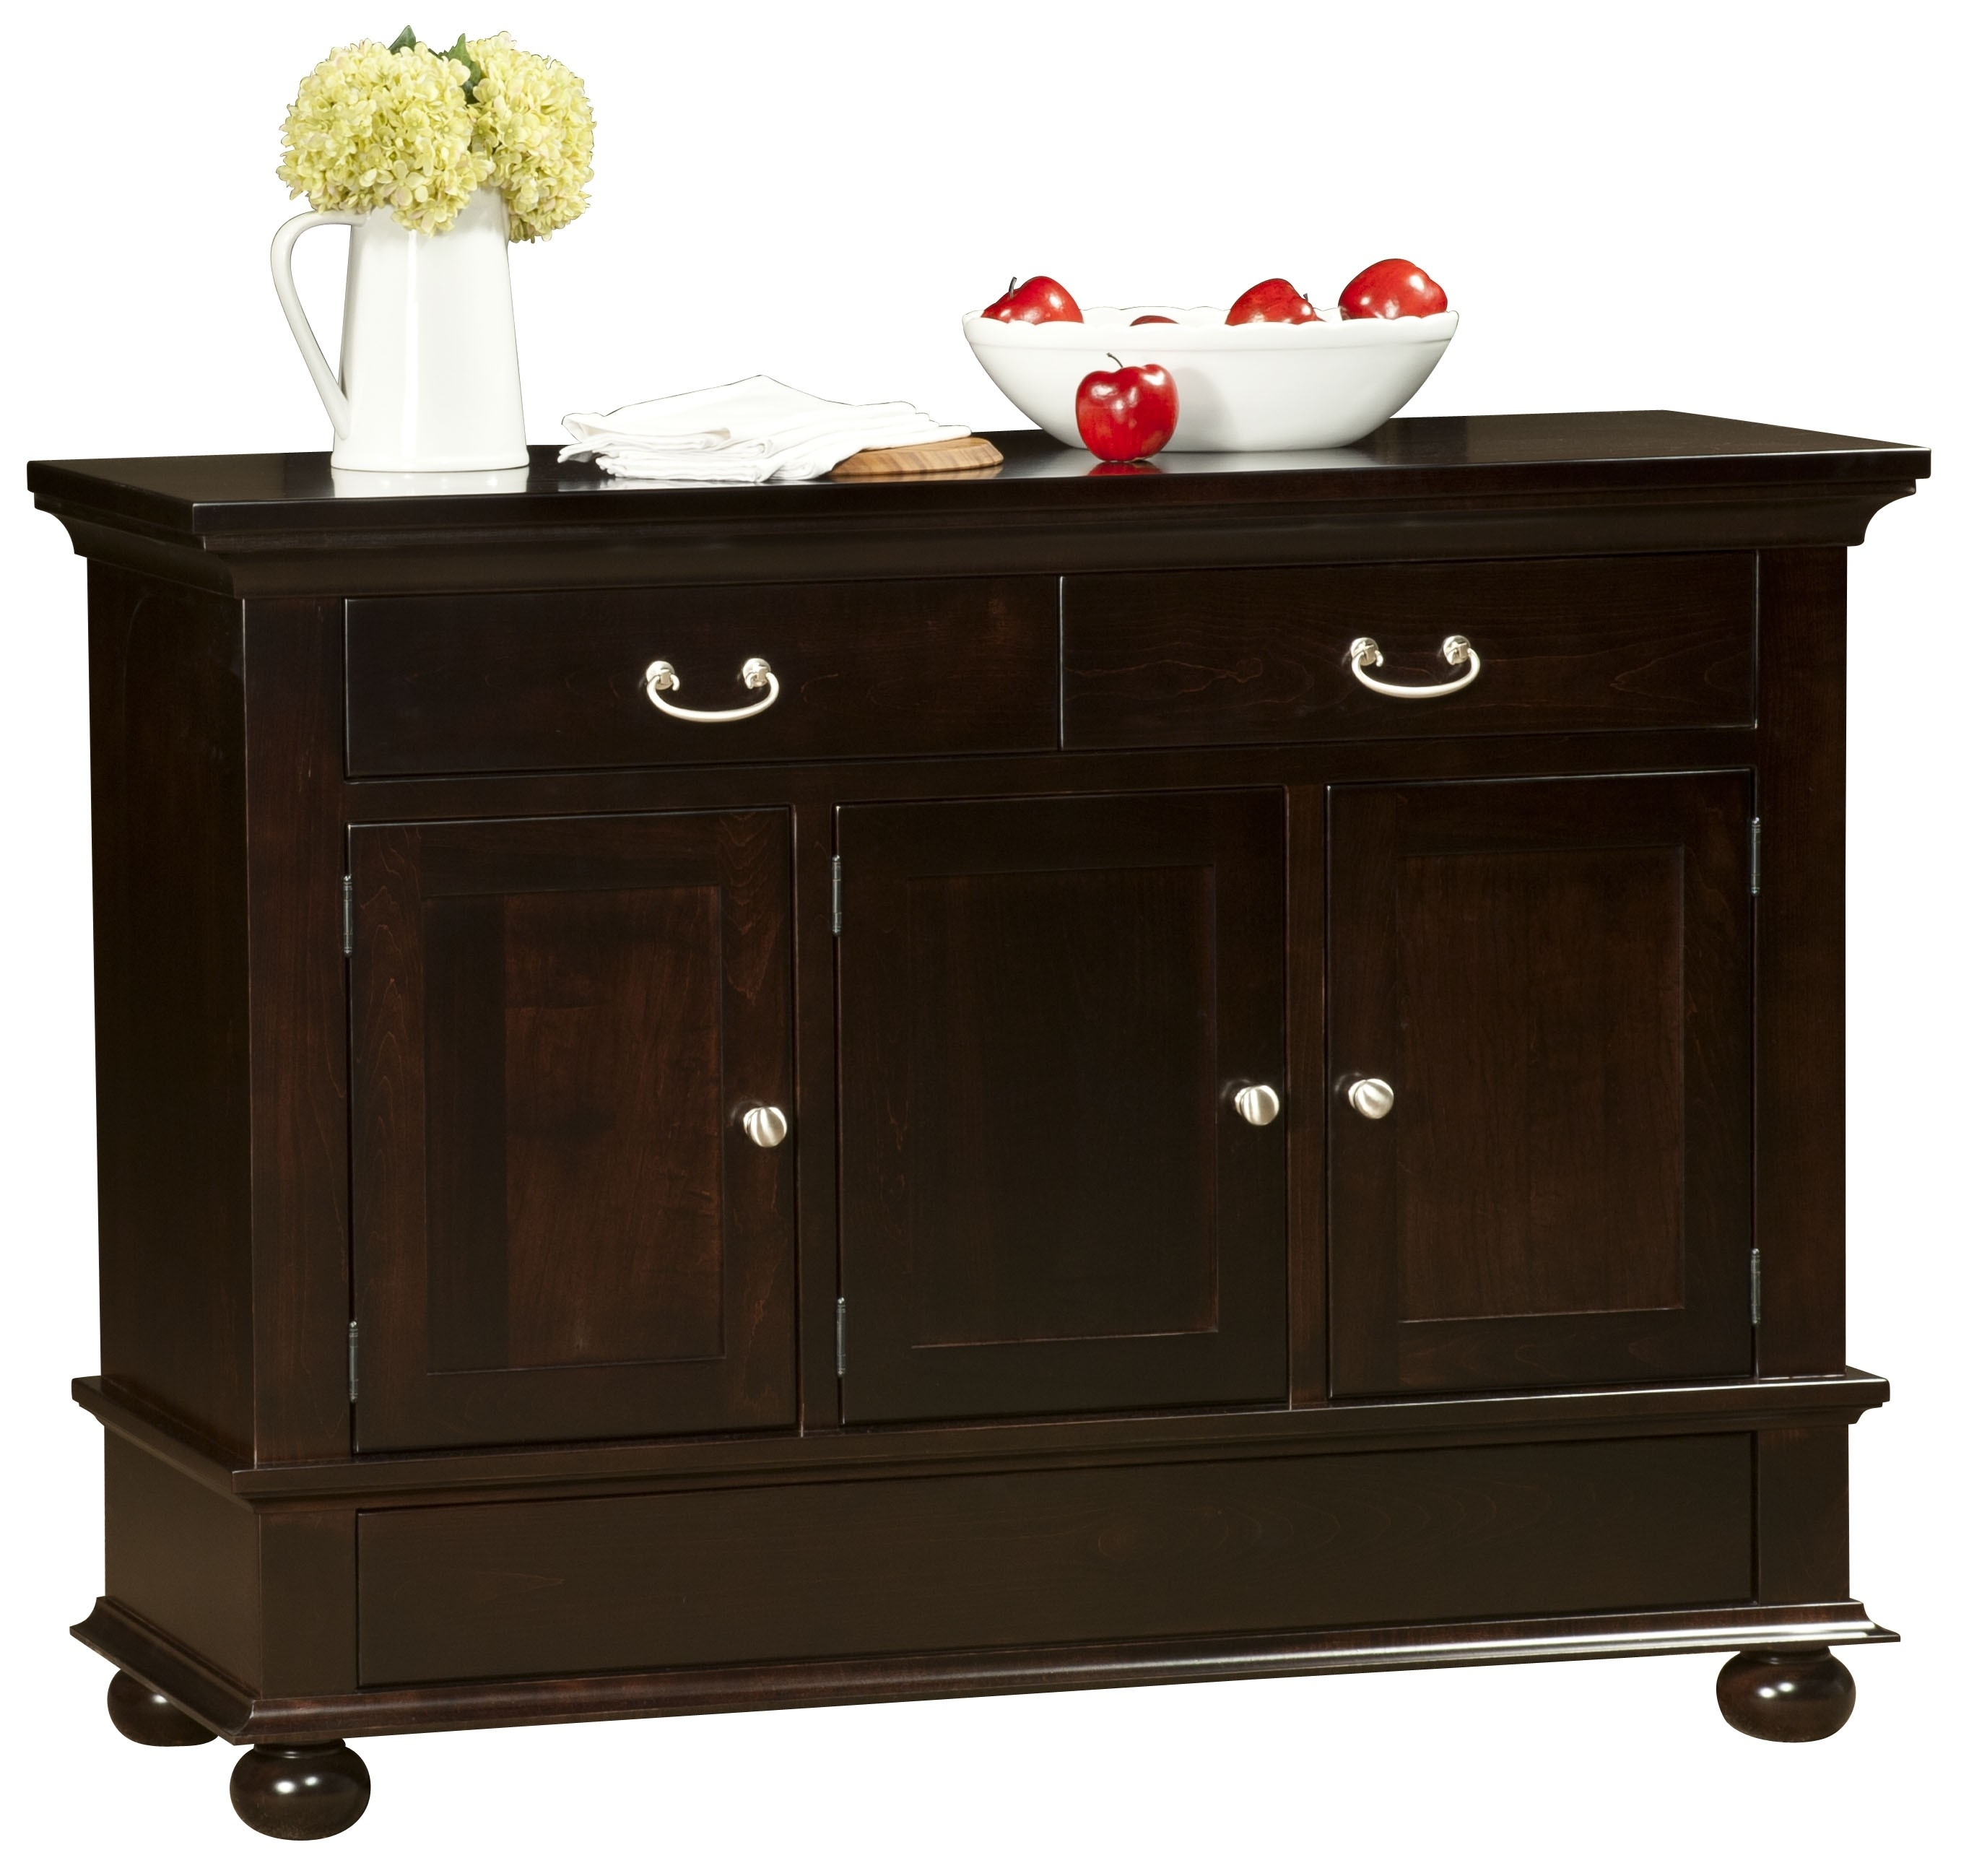 Buffets & Sideboards | Amish Crafted Furniture With 2018 Candice Ii Sideboards (View 12 of 20)